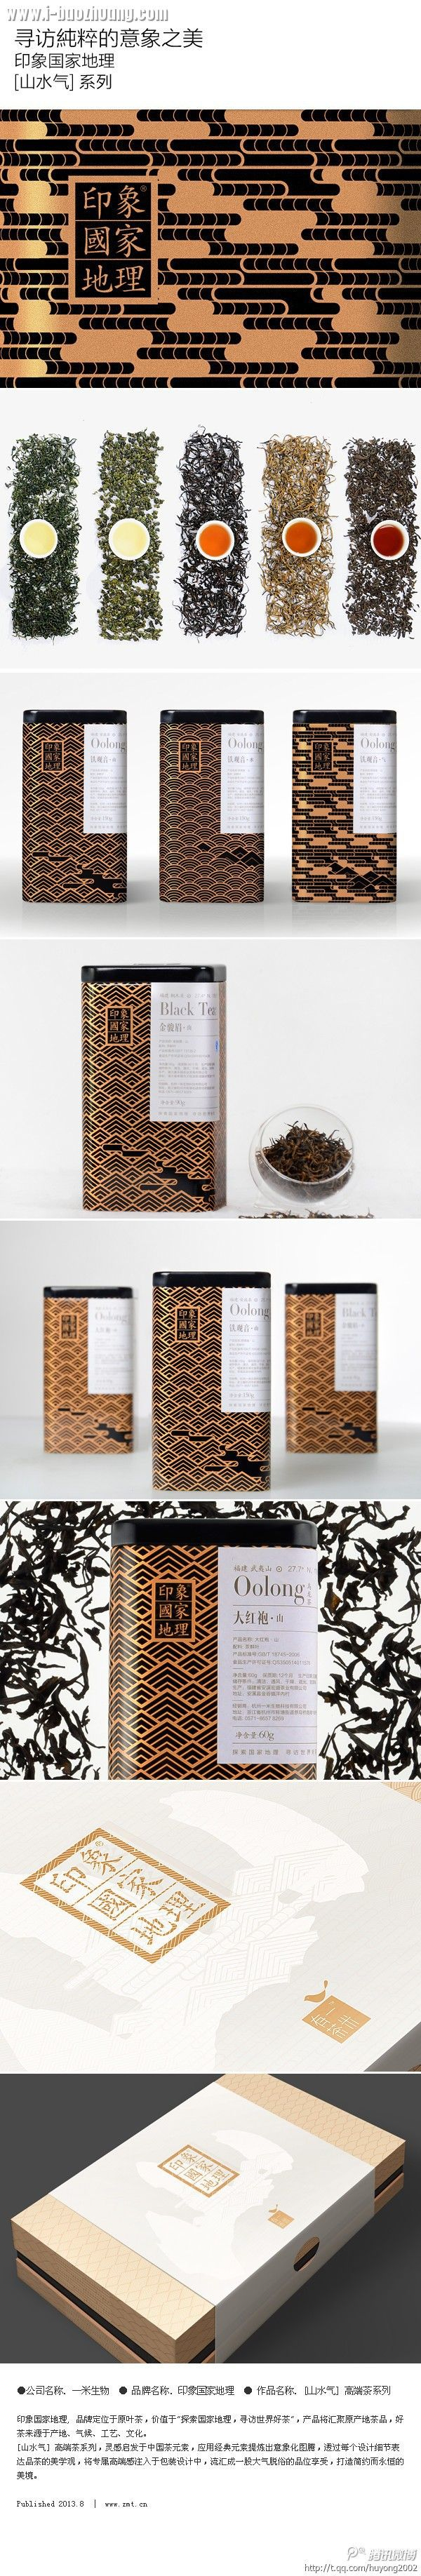 重墨堂2013案例之印像國家地理茶包... even if you never liked tea this #packaging would inspire you to try it PD